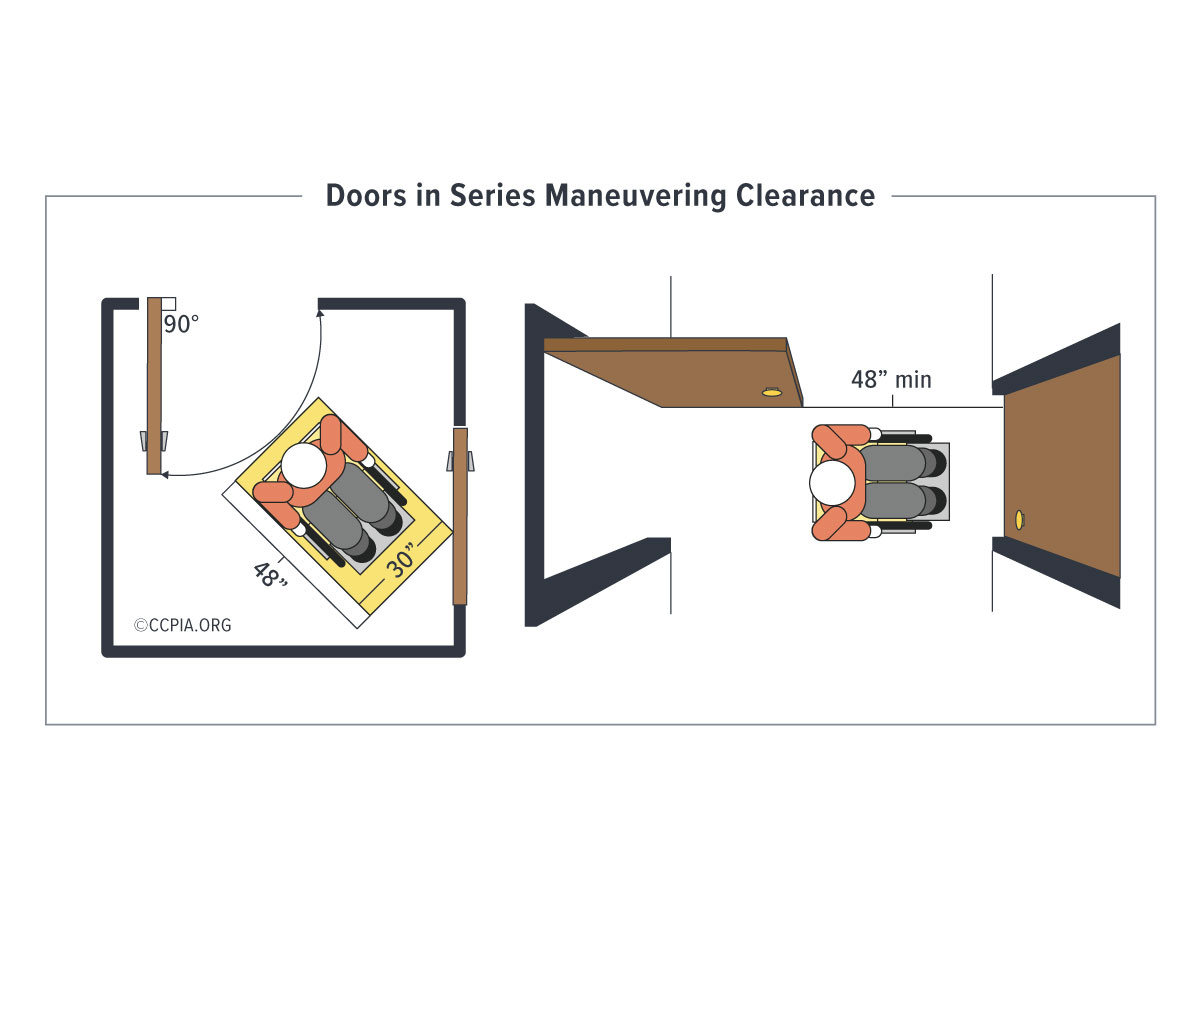 Doors in series maneuvering clearance, accessibility in public accommodations and commercial facilities.